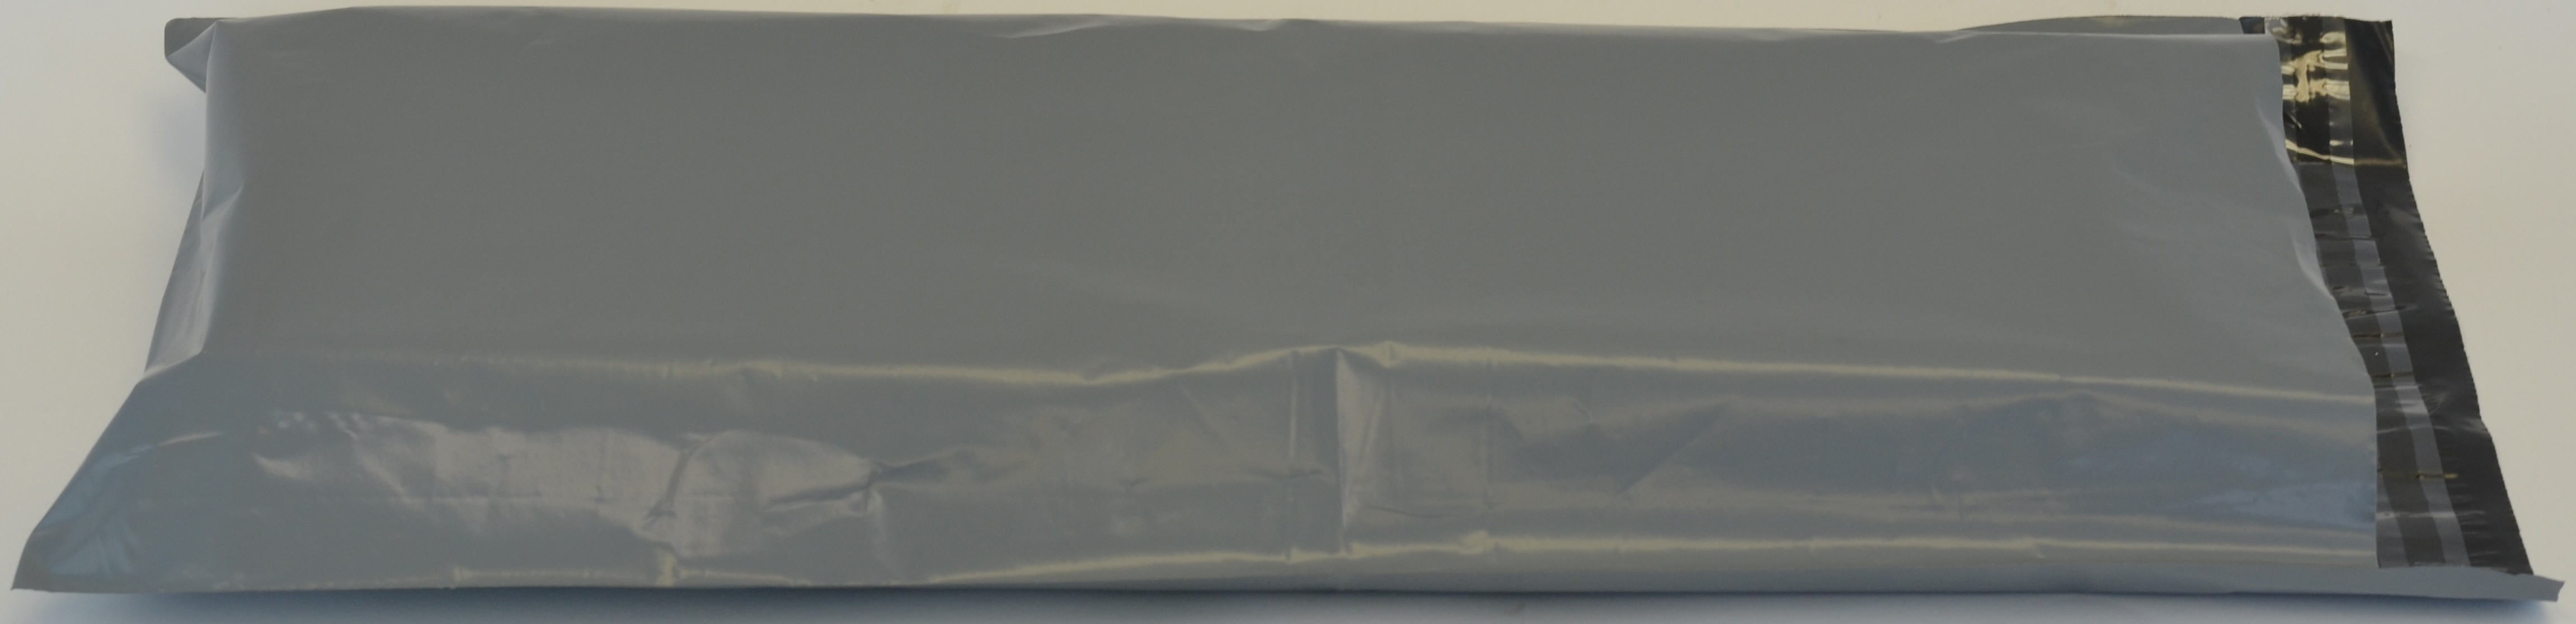 """100 - 10x20"""" Poly Mailers Envelopes Self Sealing Bags - 2.4 Mil"""